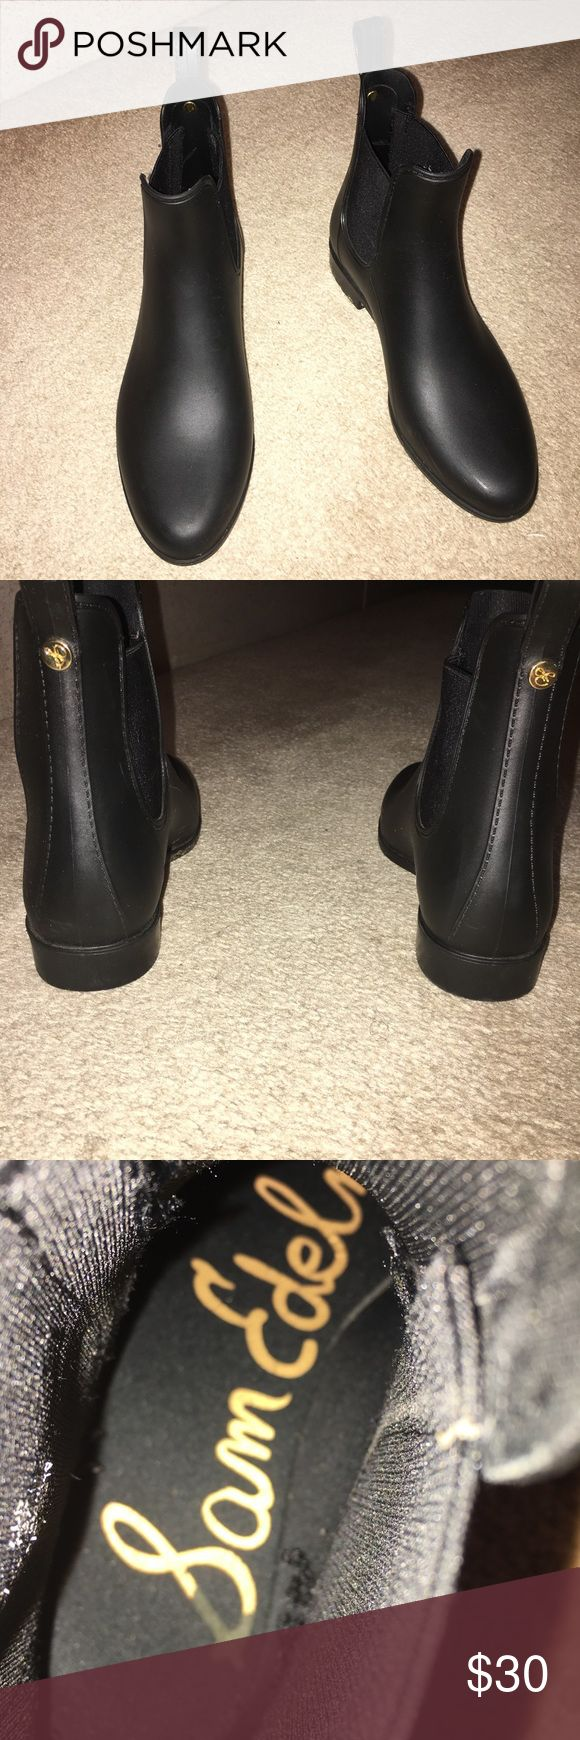 Sam Edelman Tinsley Rubber Rain Boots Sam Edelman rubber rain boots size 7 only worn a handful of times! Sam Edelman Shoes Ankle Boots & Booties